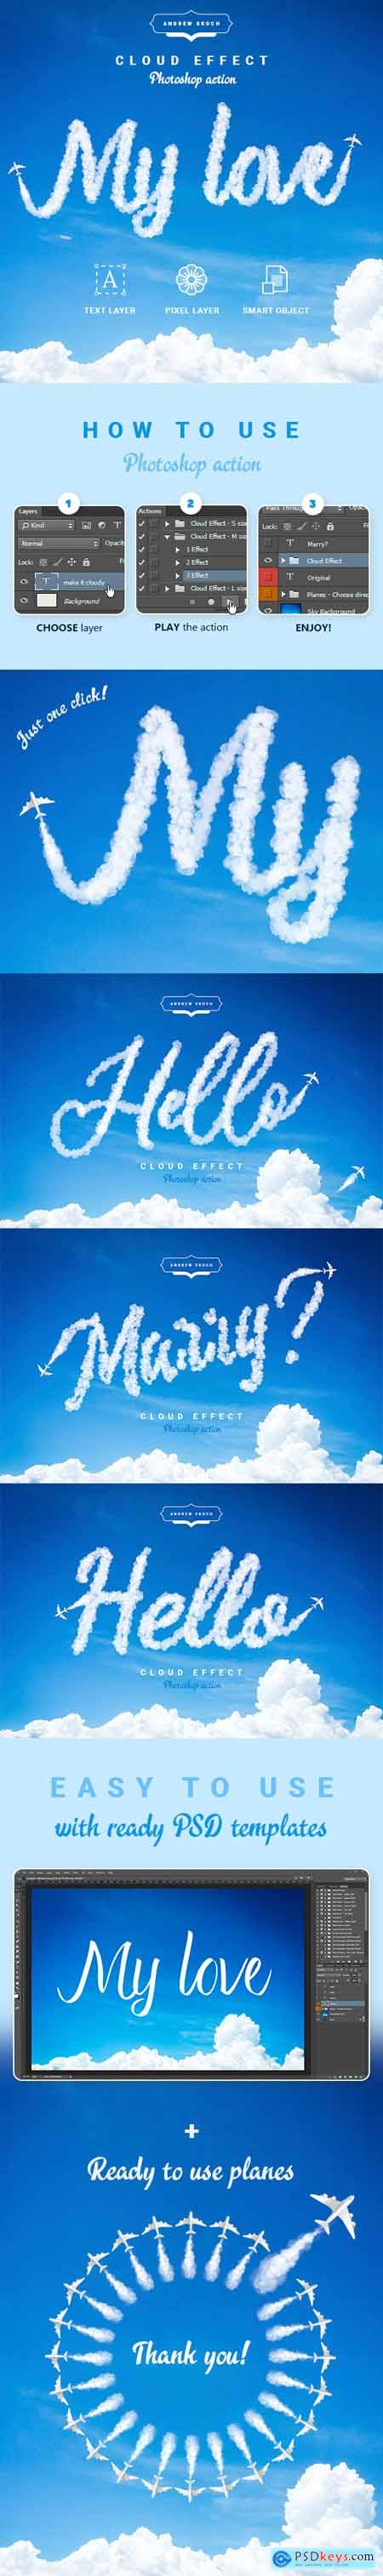 Cloud Text - Photoshop Action 24184126